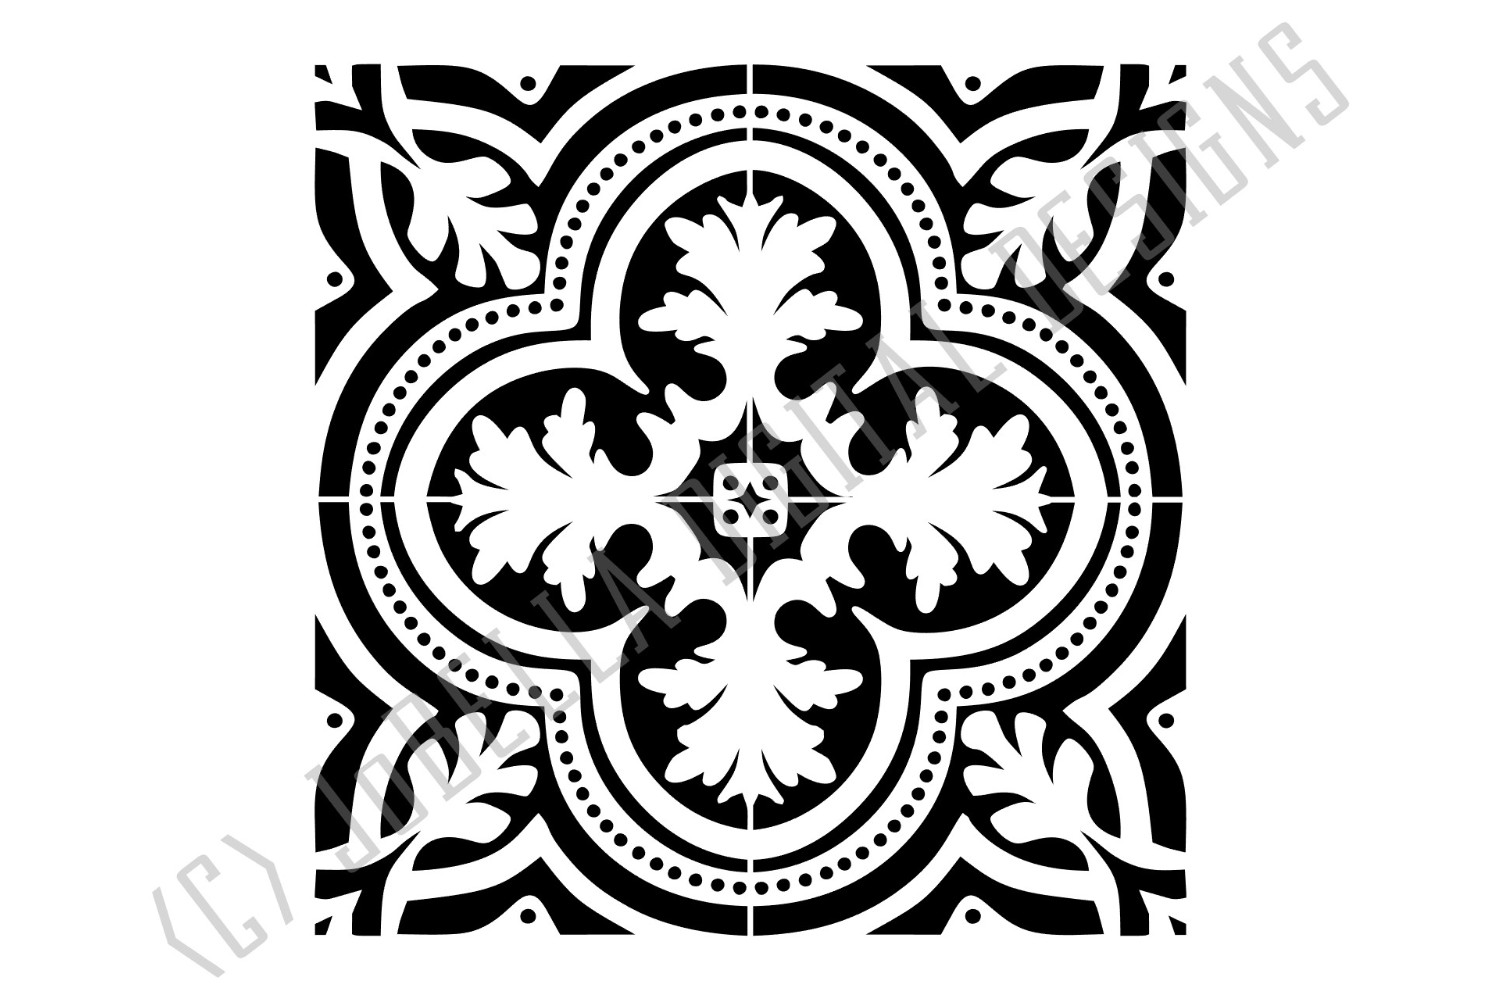 Spanish Tile 1 SVG, Stencil Template and Printable example image 3